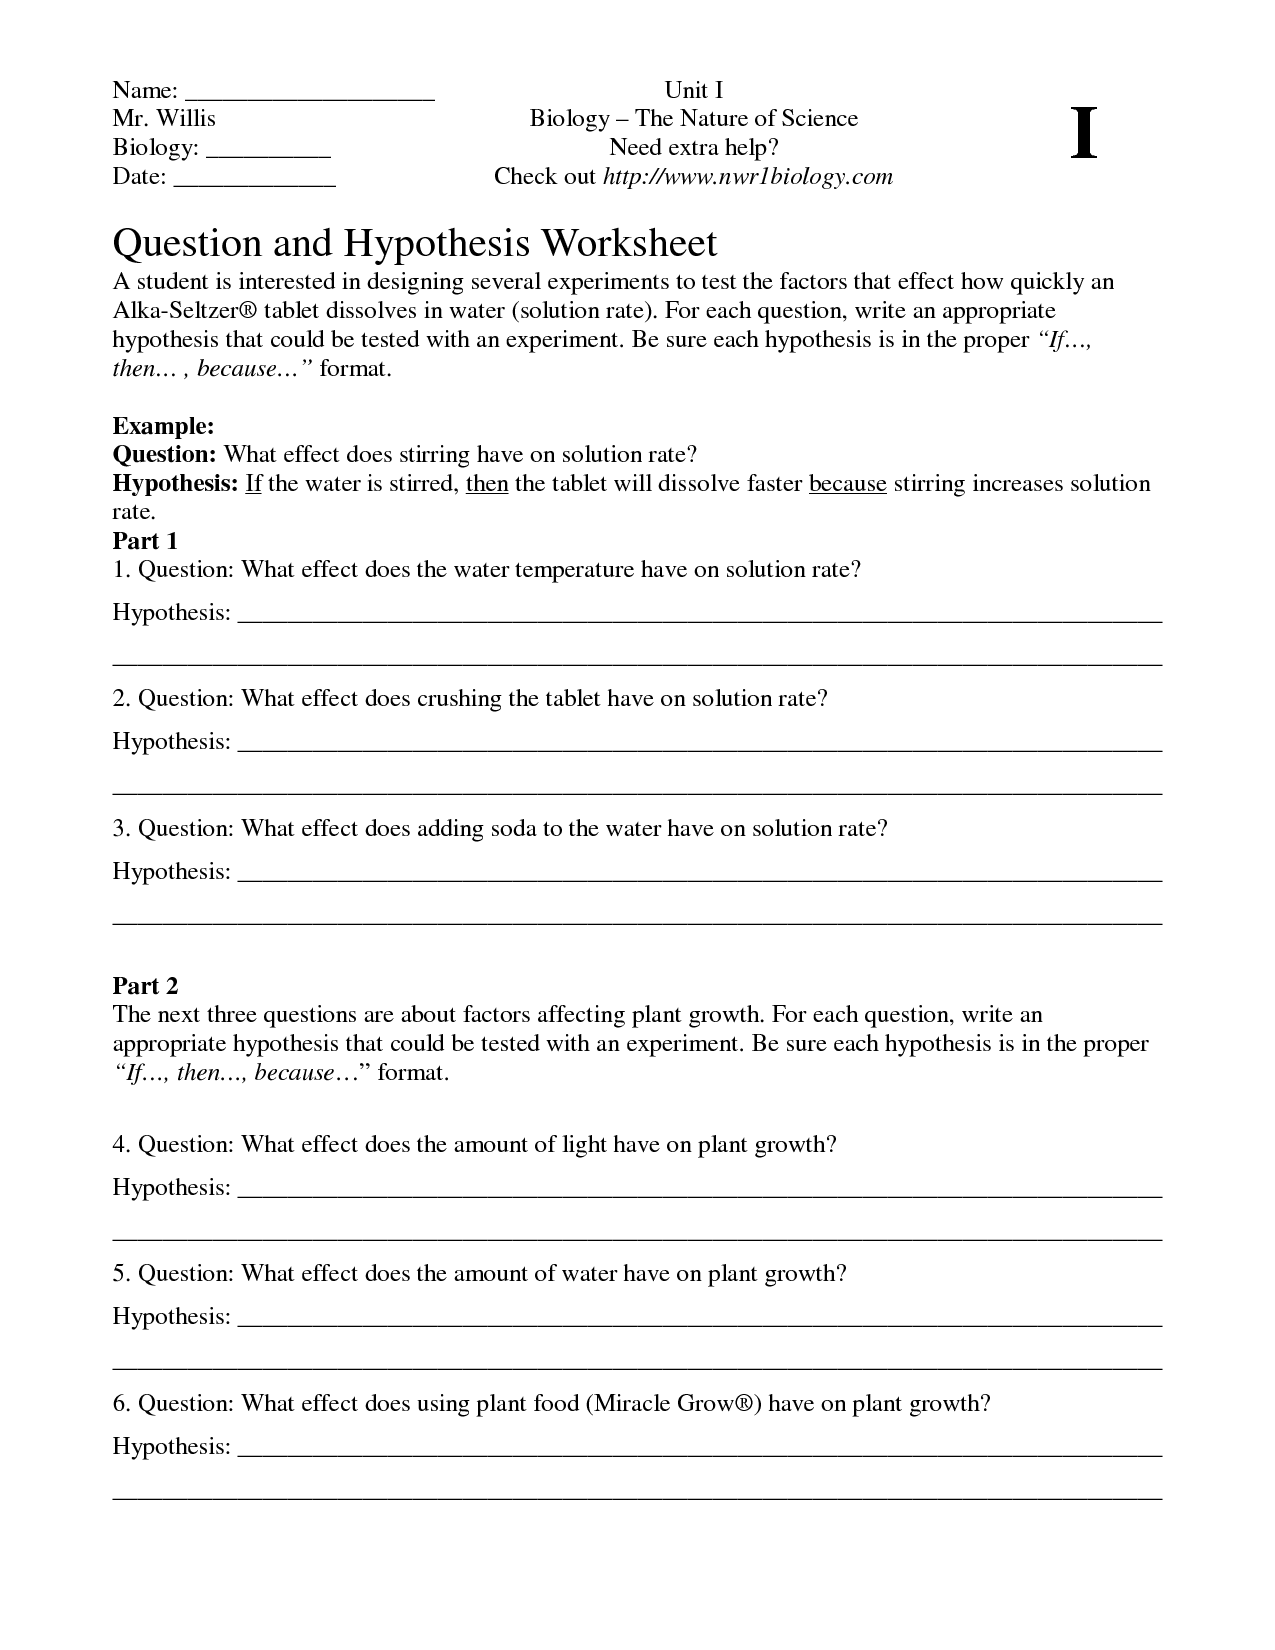 worksheet Hypothesis Worksheet hypothesis worksheet free worksheets library download and print worksheet